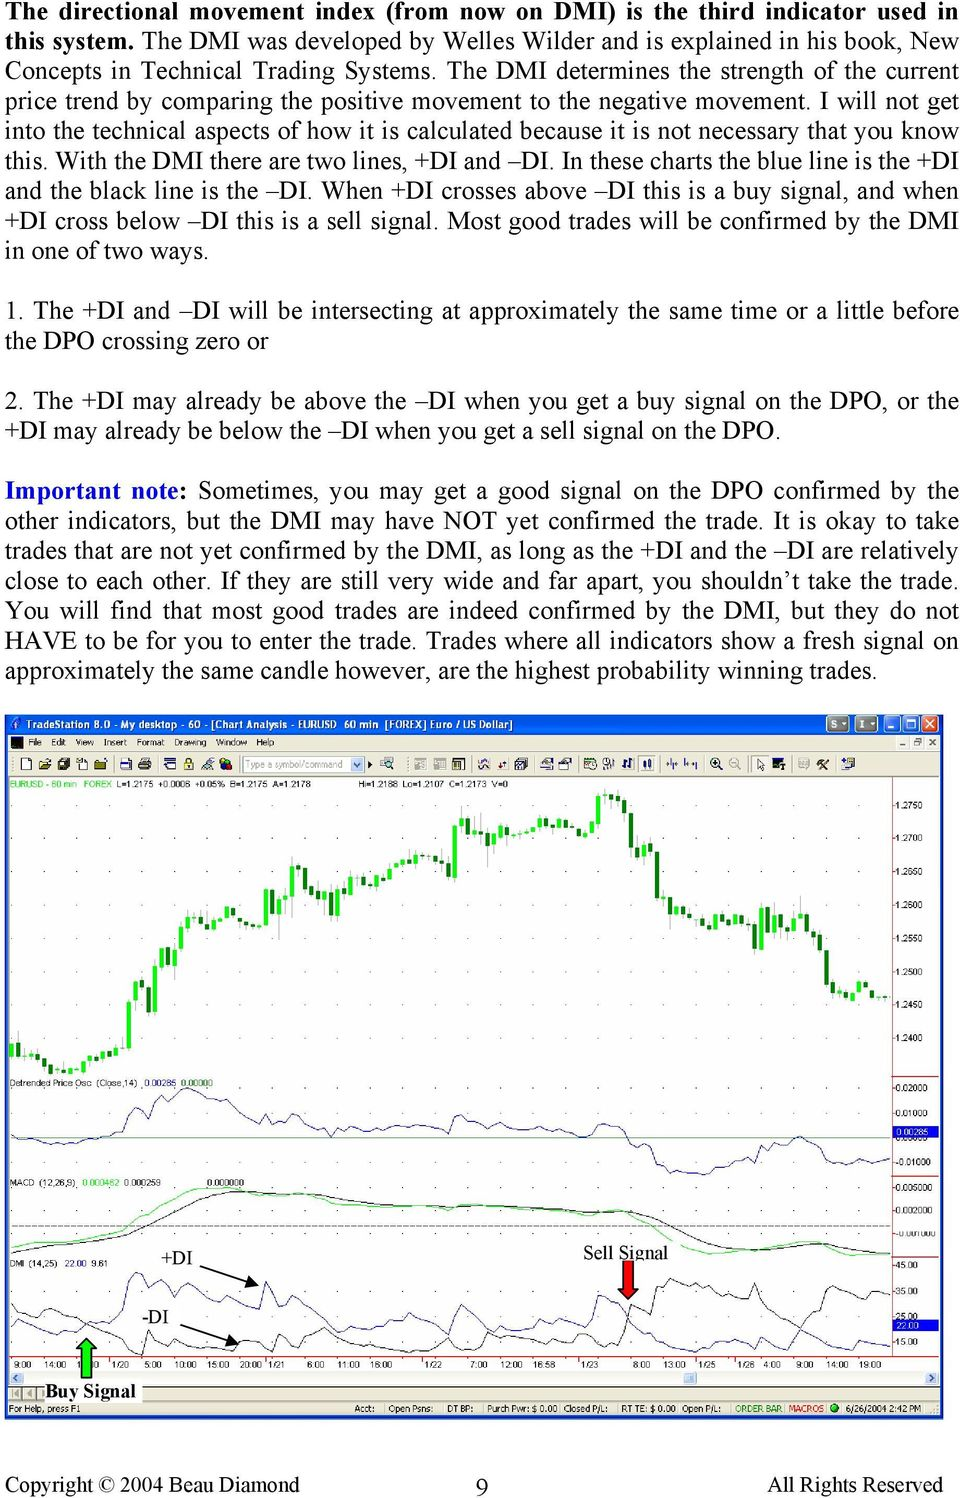 The DMI determines the strength of the current price trend by comparing the positive movement to the negative movement.